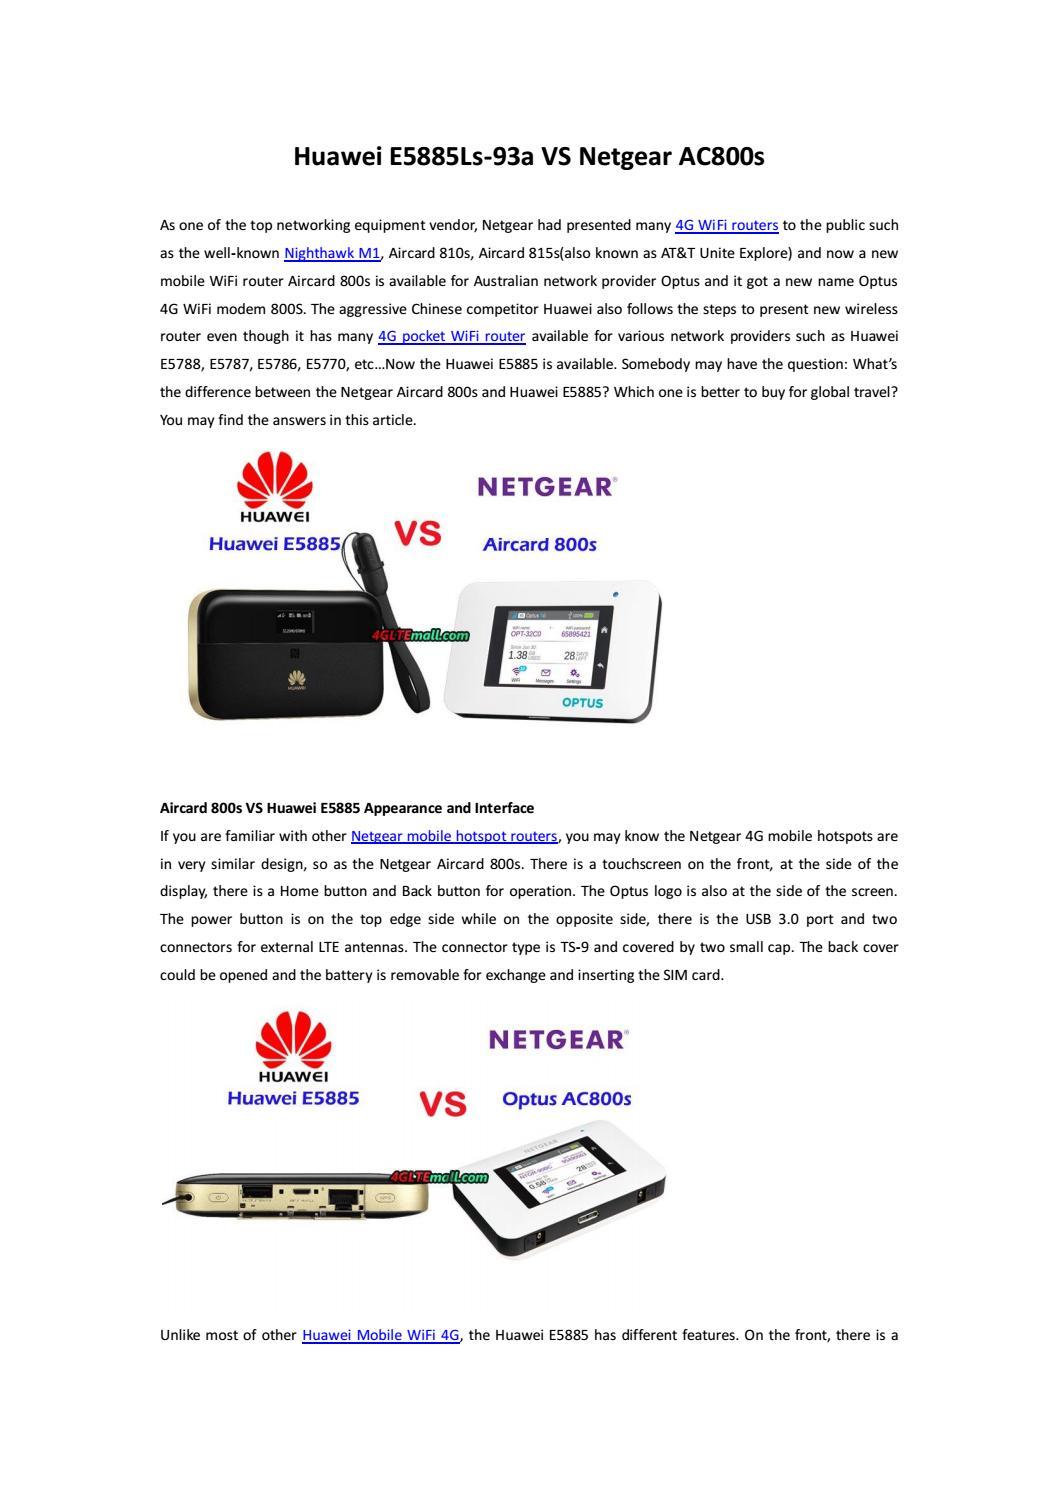 Difference Between Huawei E5885 and Netgear Aircard 800s by